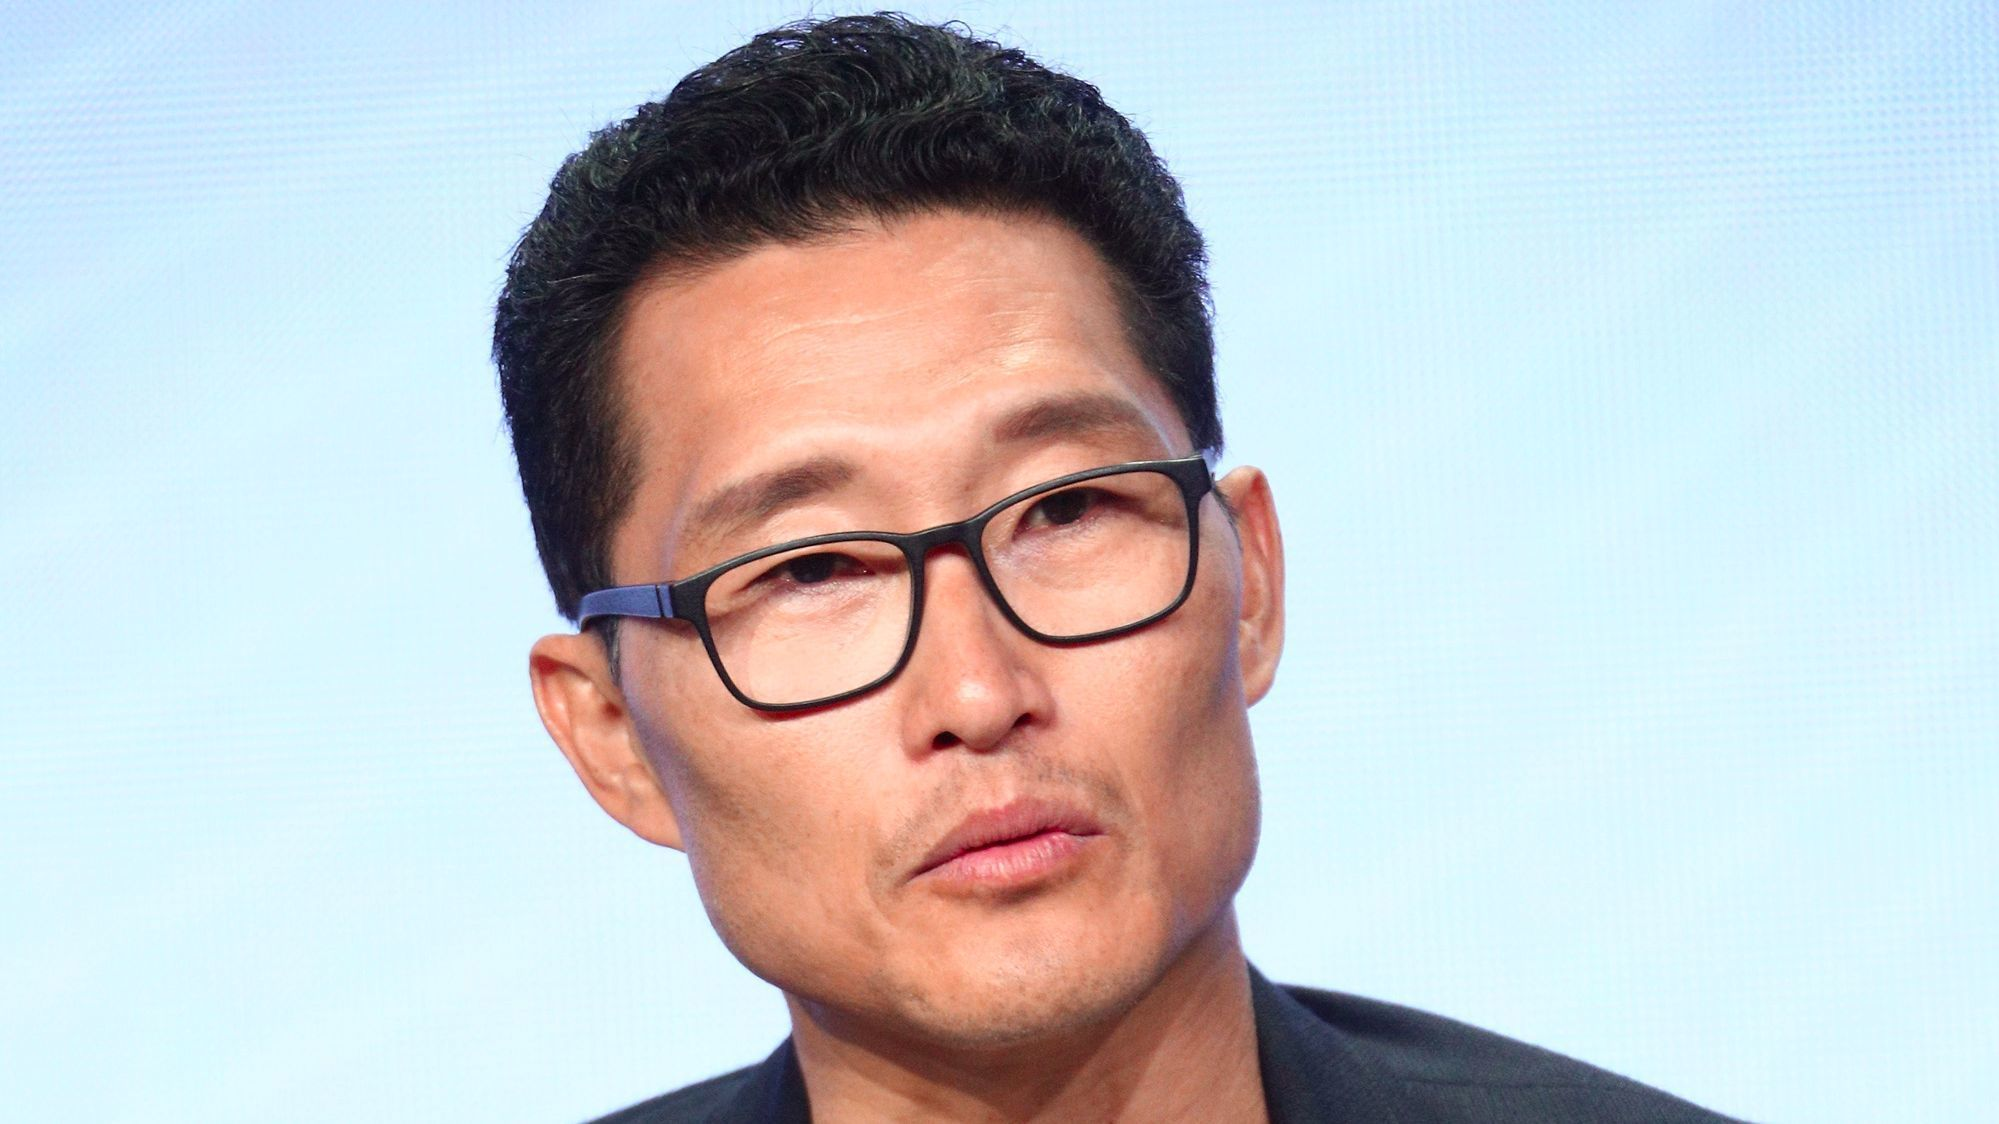 Hawaii Five-0 Star Daniel Dae Kim Addresses Exit